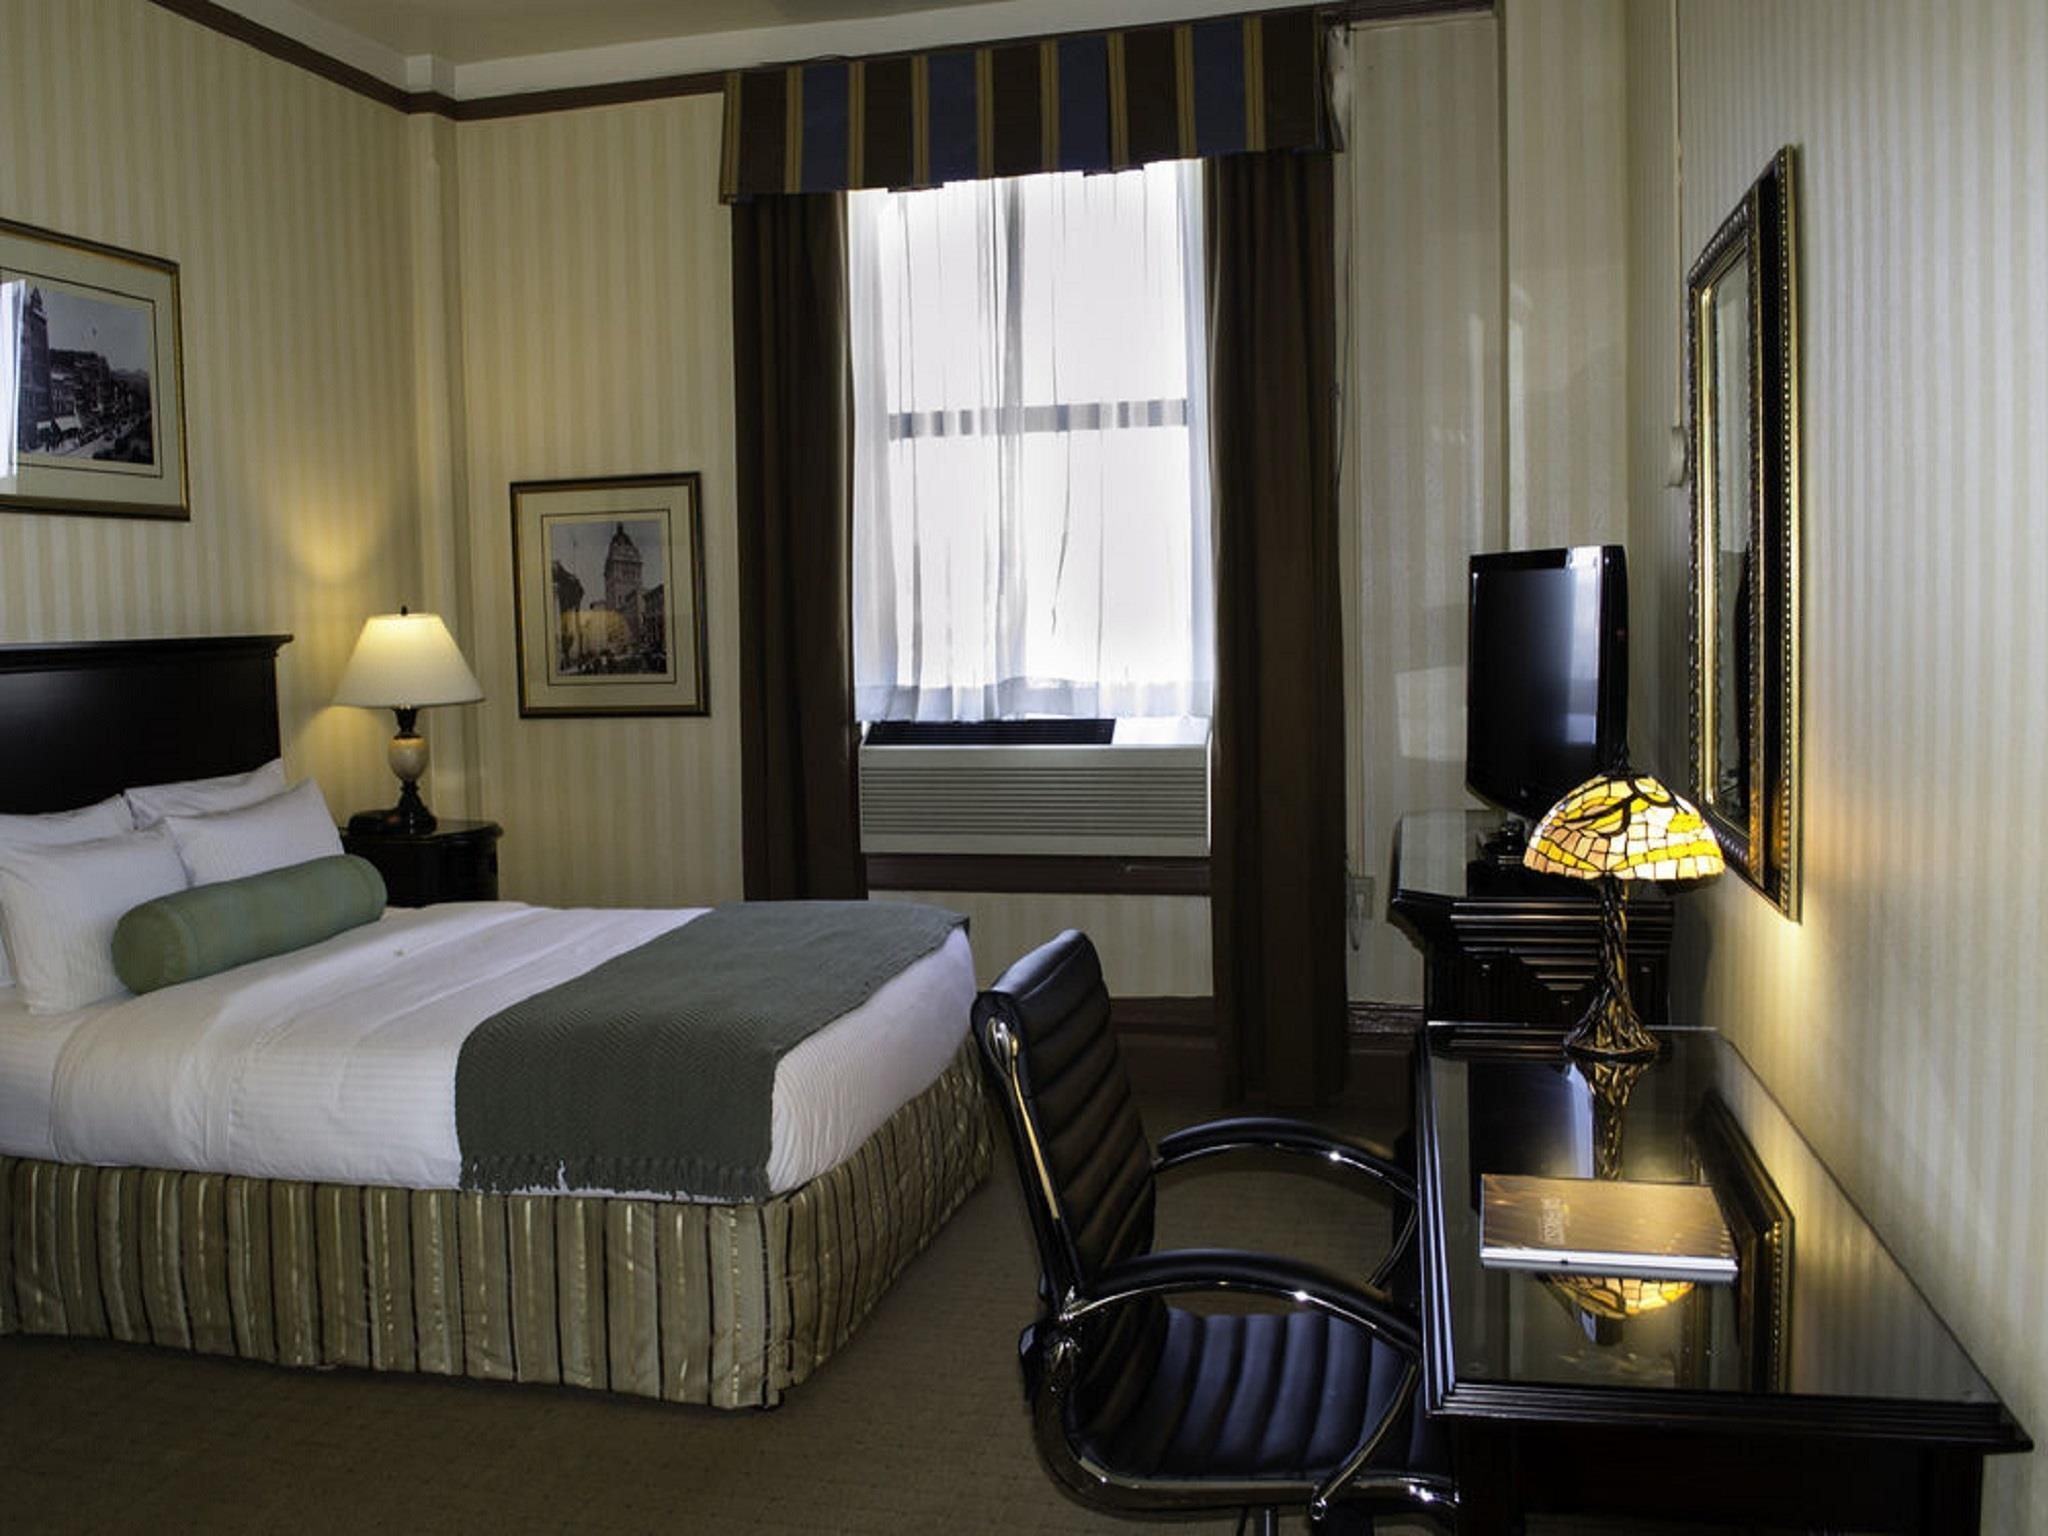 Superior Queen Room - Free Internet In Room